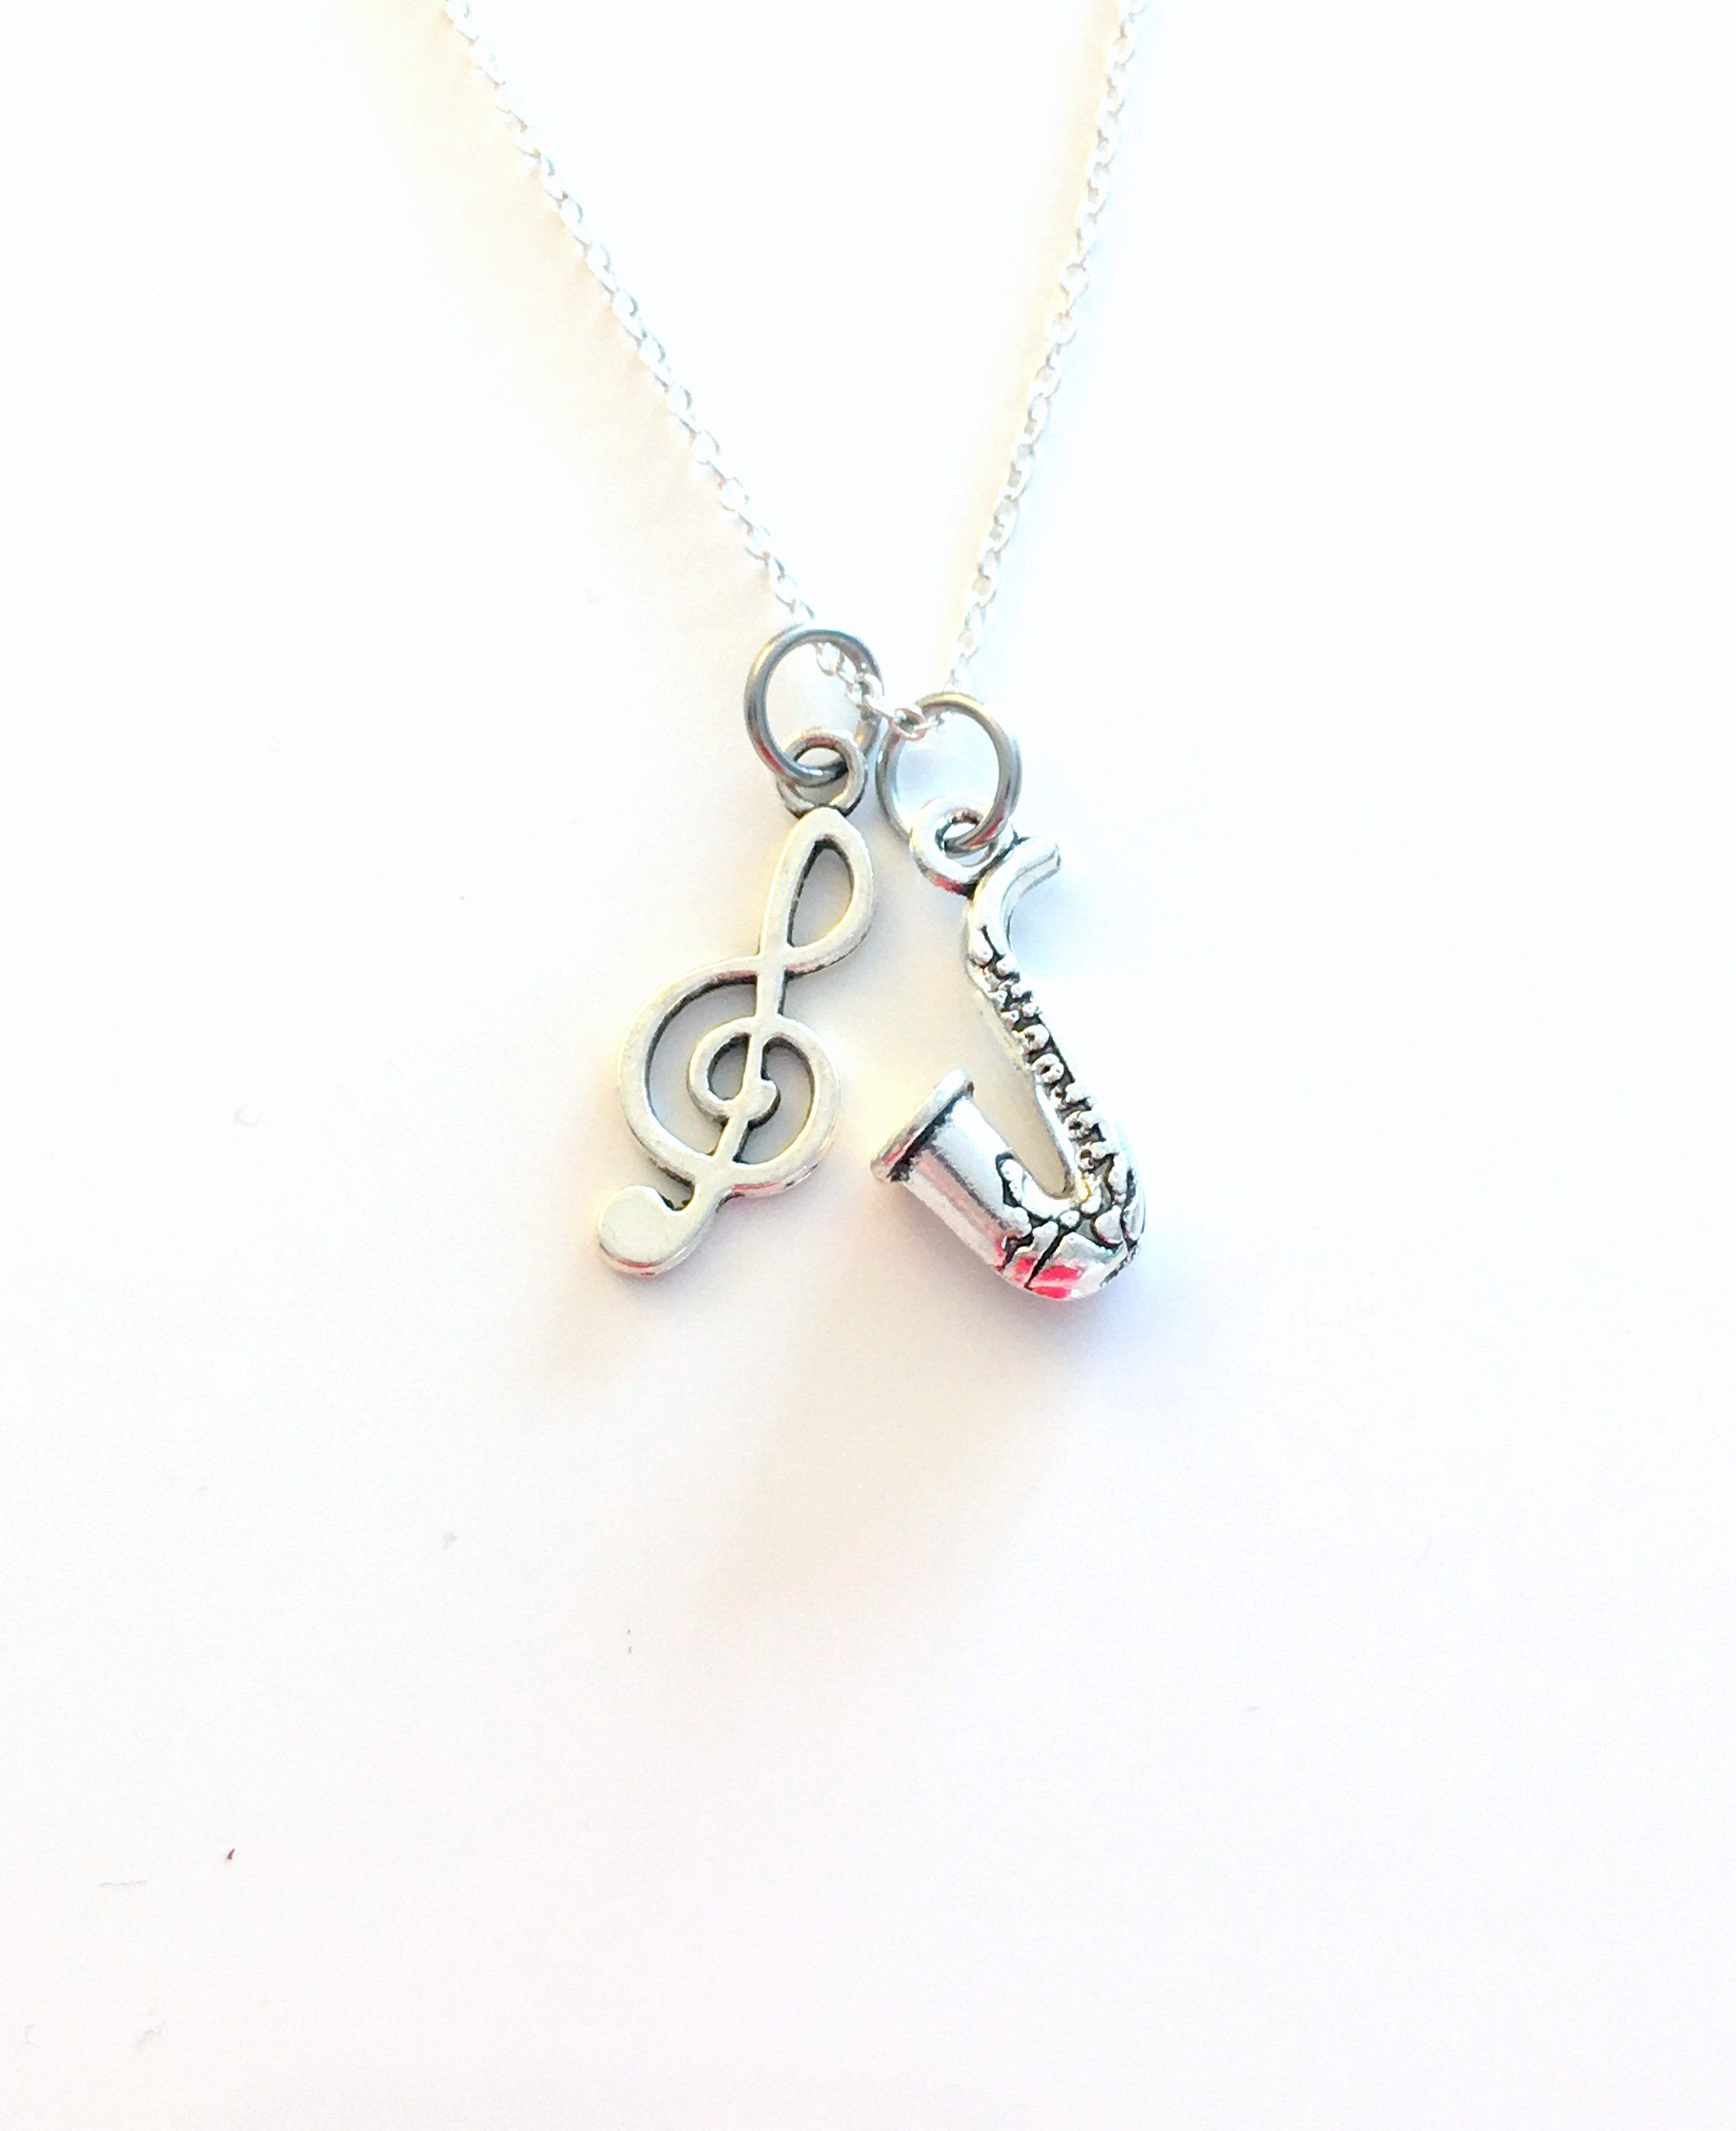 3//4 inch Tall Sterling Silver Saxophone Pendant,